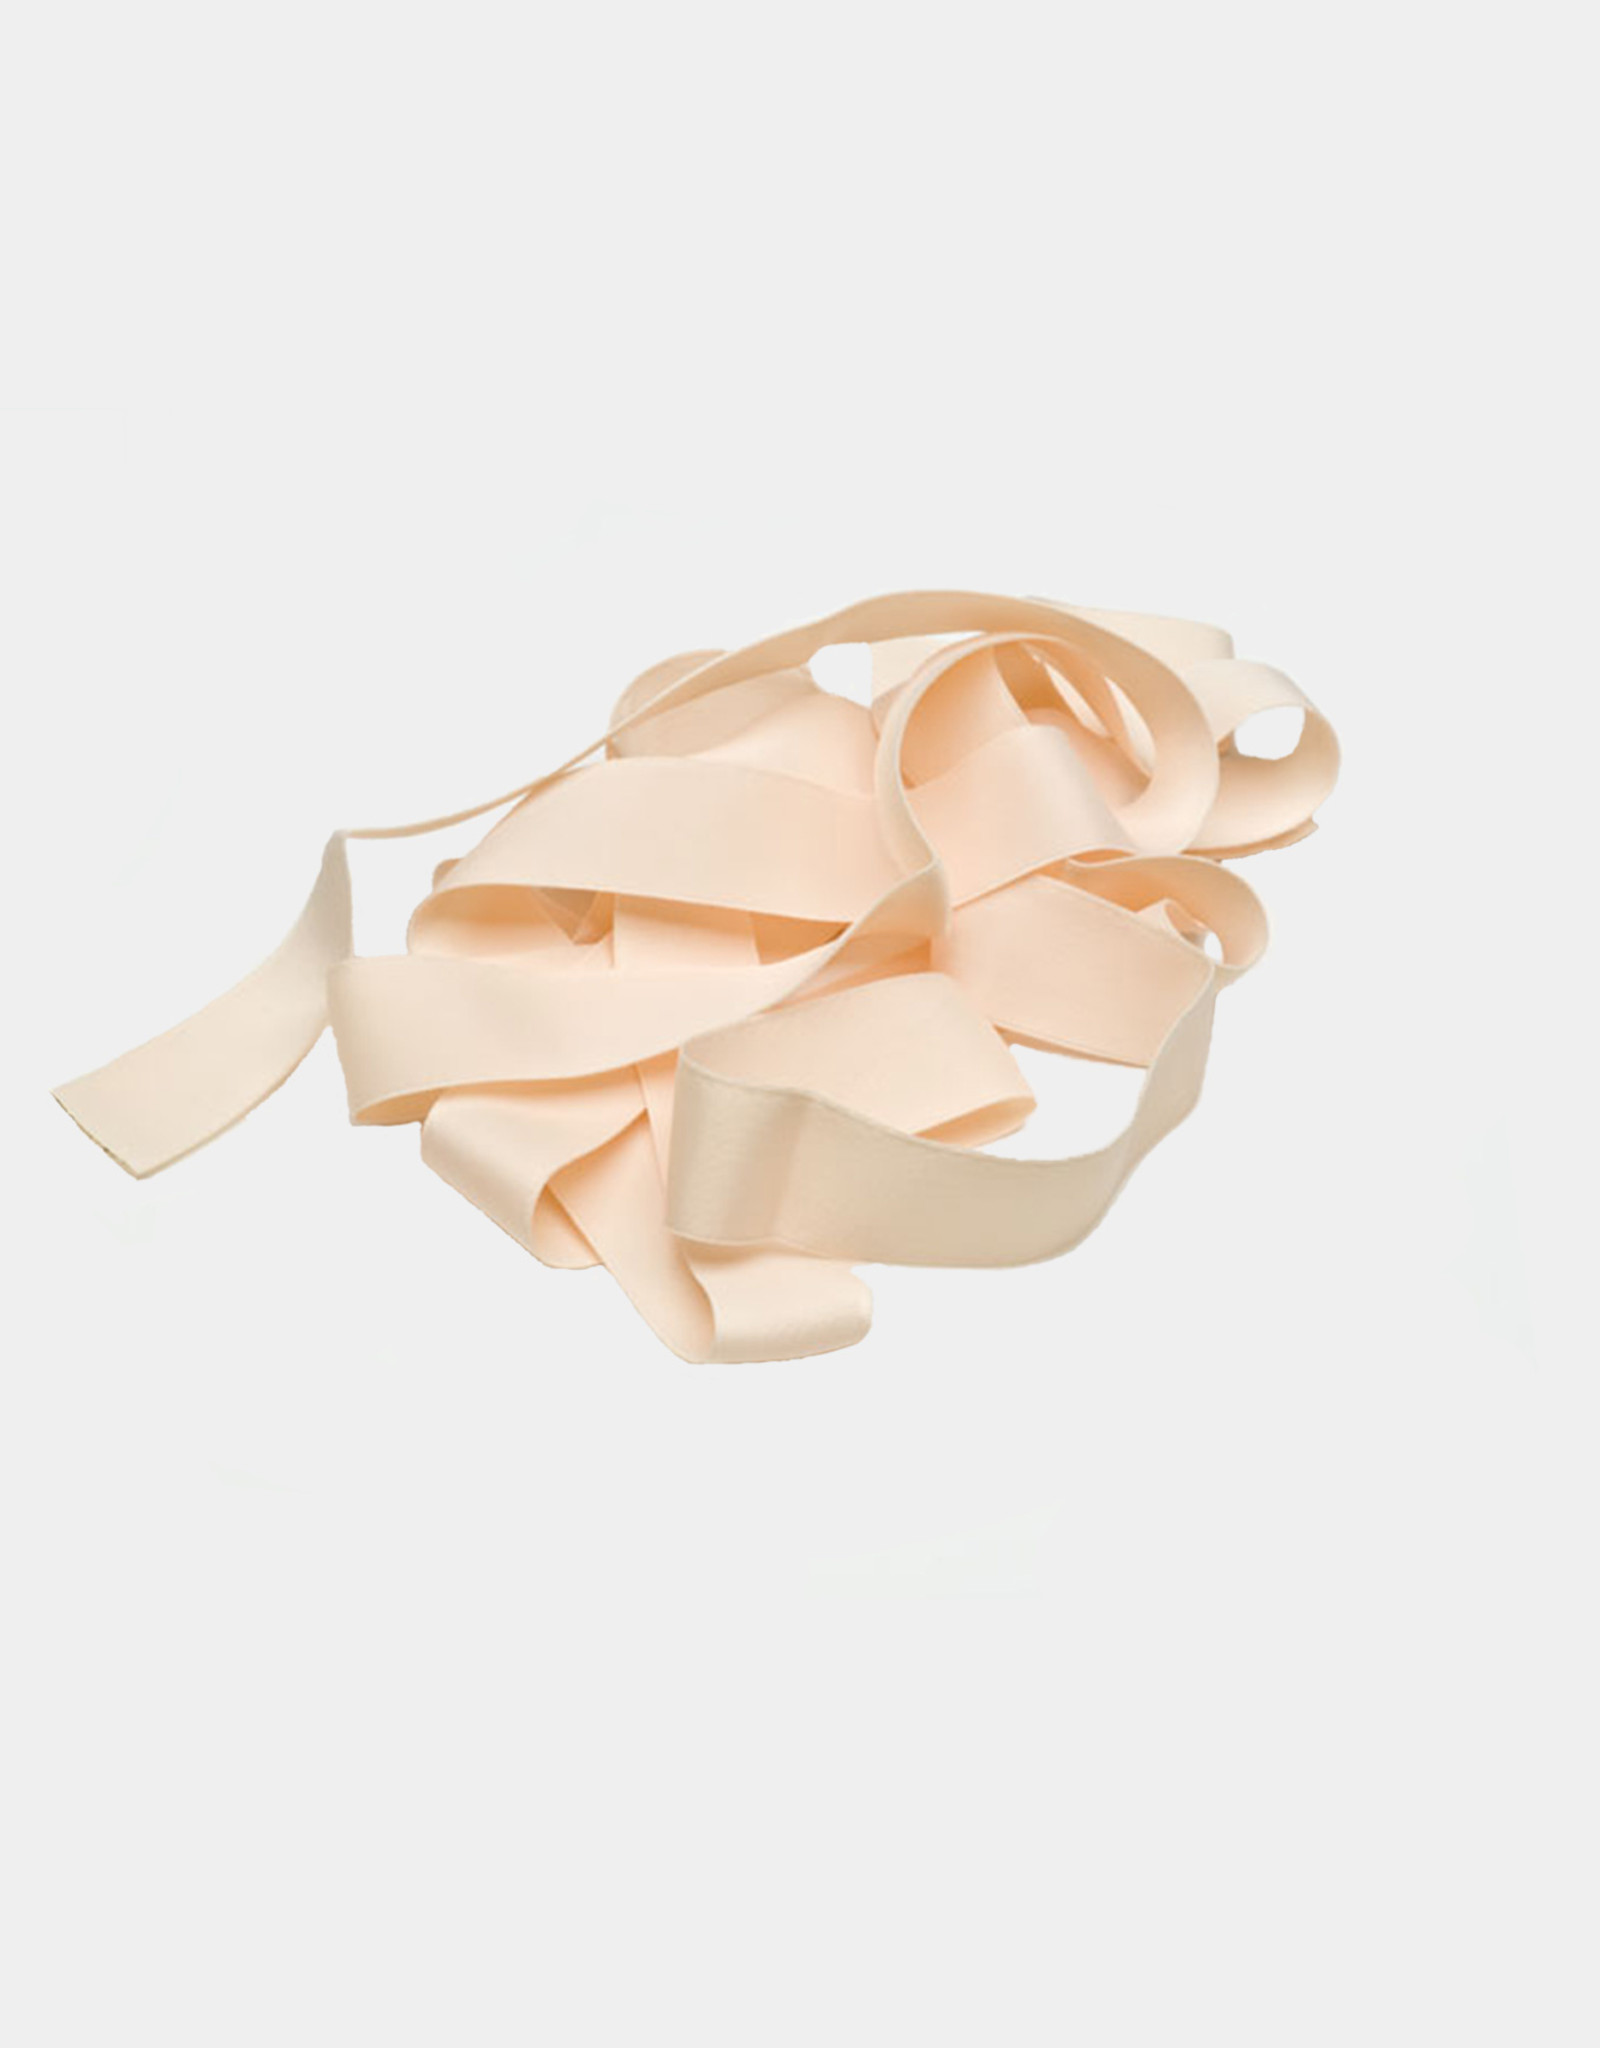 ANGELO LUZIO PACKAGE OF POINTE SHOE STRETCH RIBBON (52)